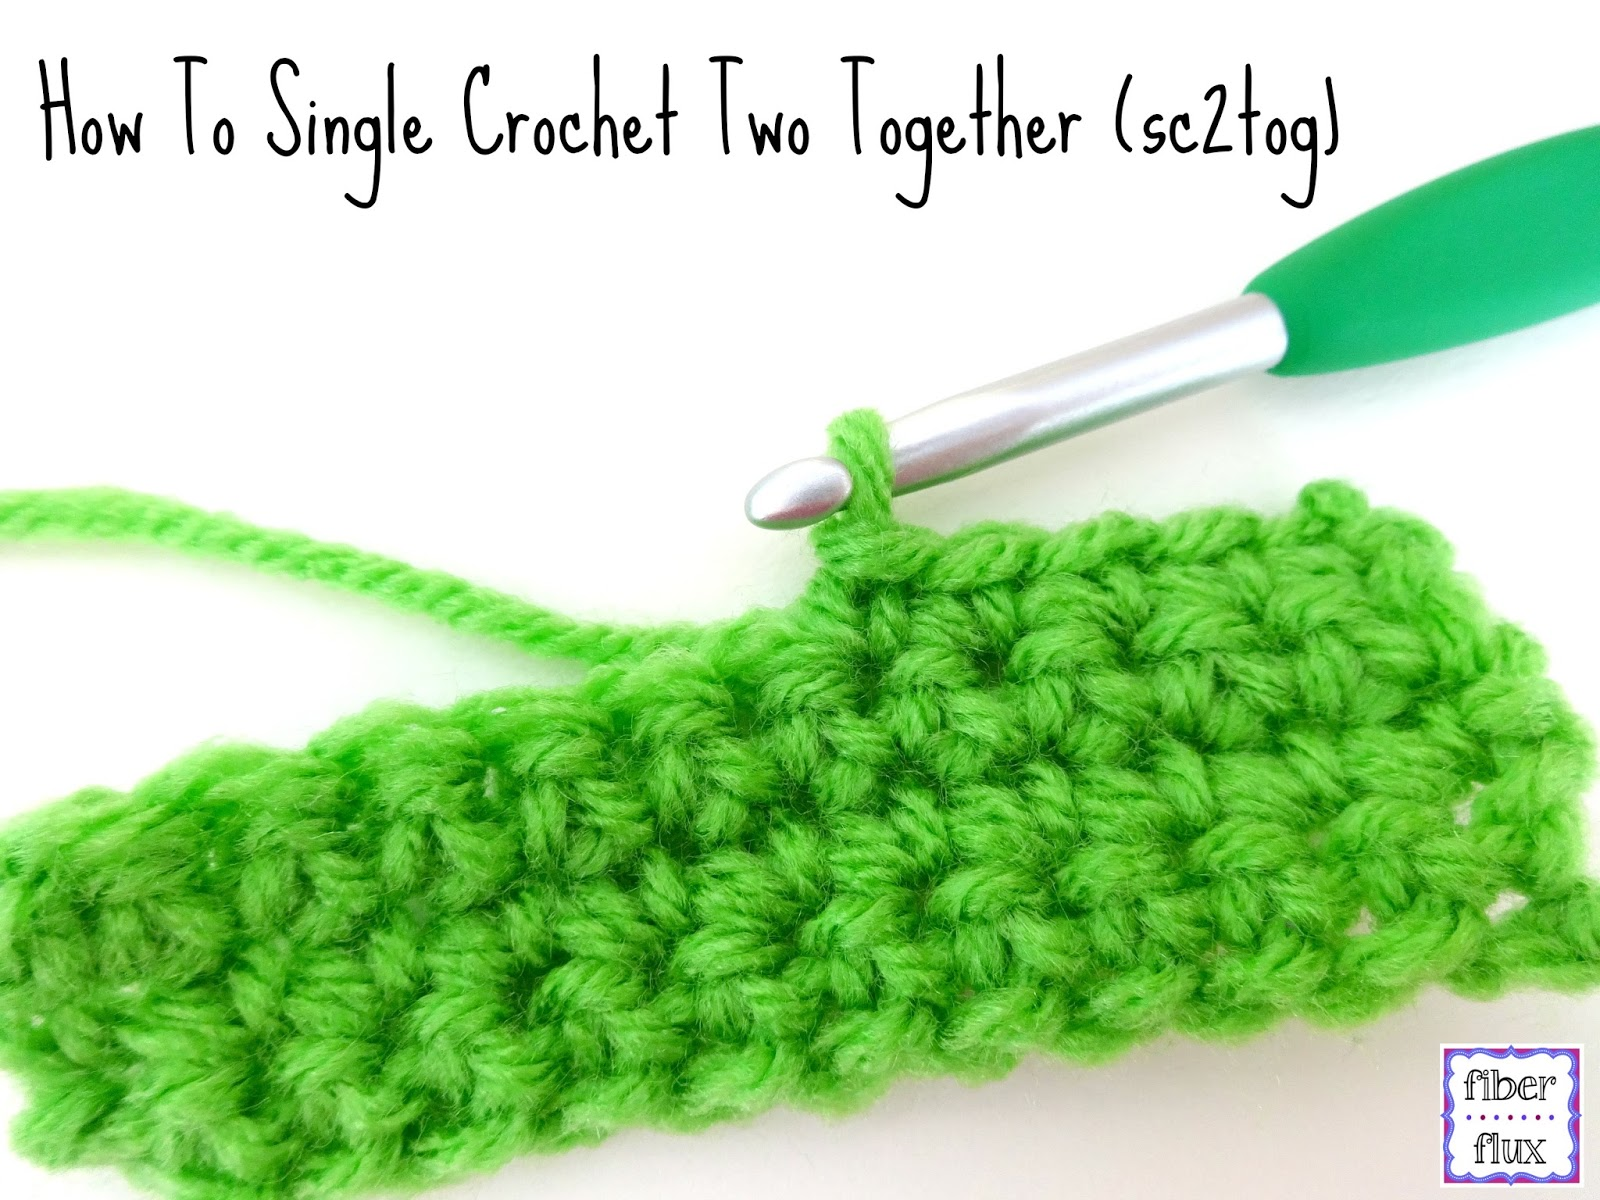 crochet two together stitch or sc2tog as it is abbreviated in crochet ...